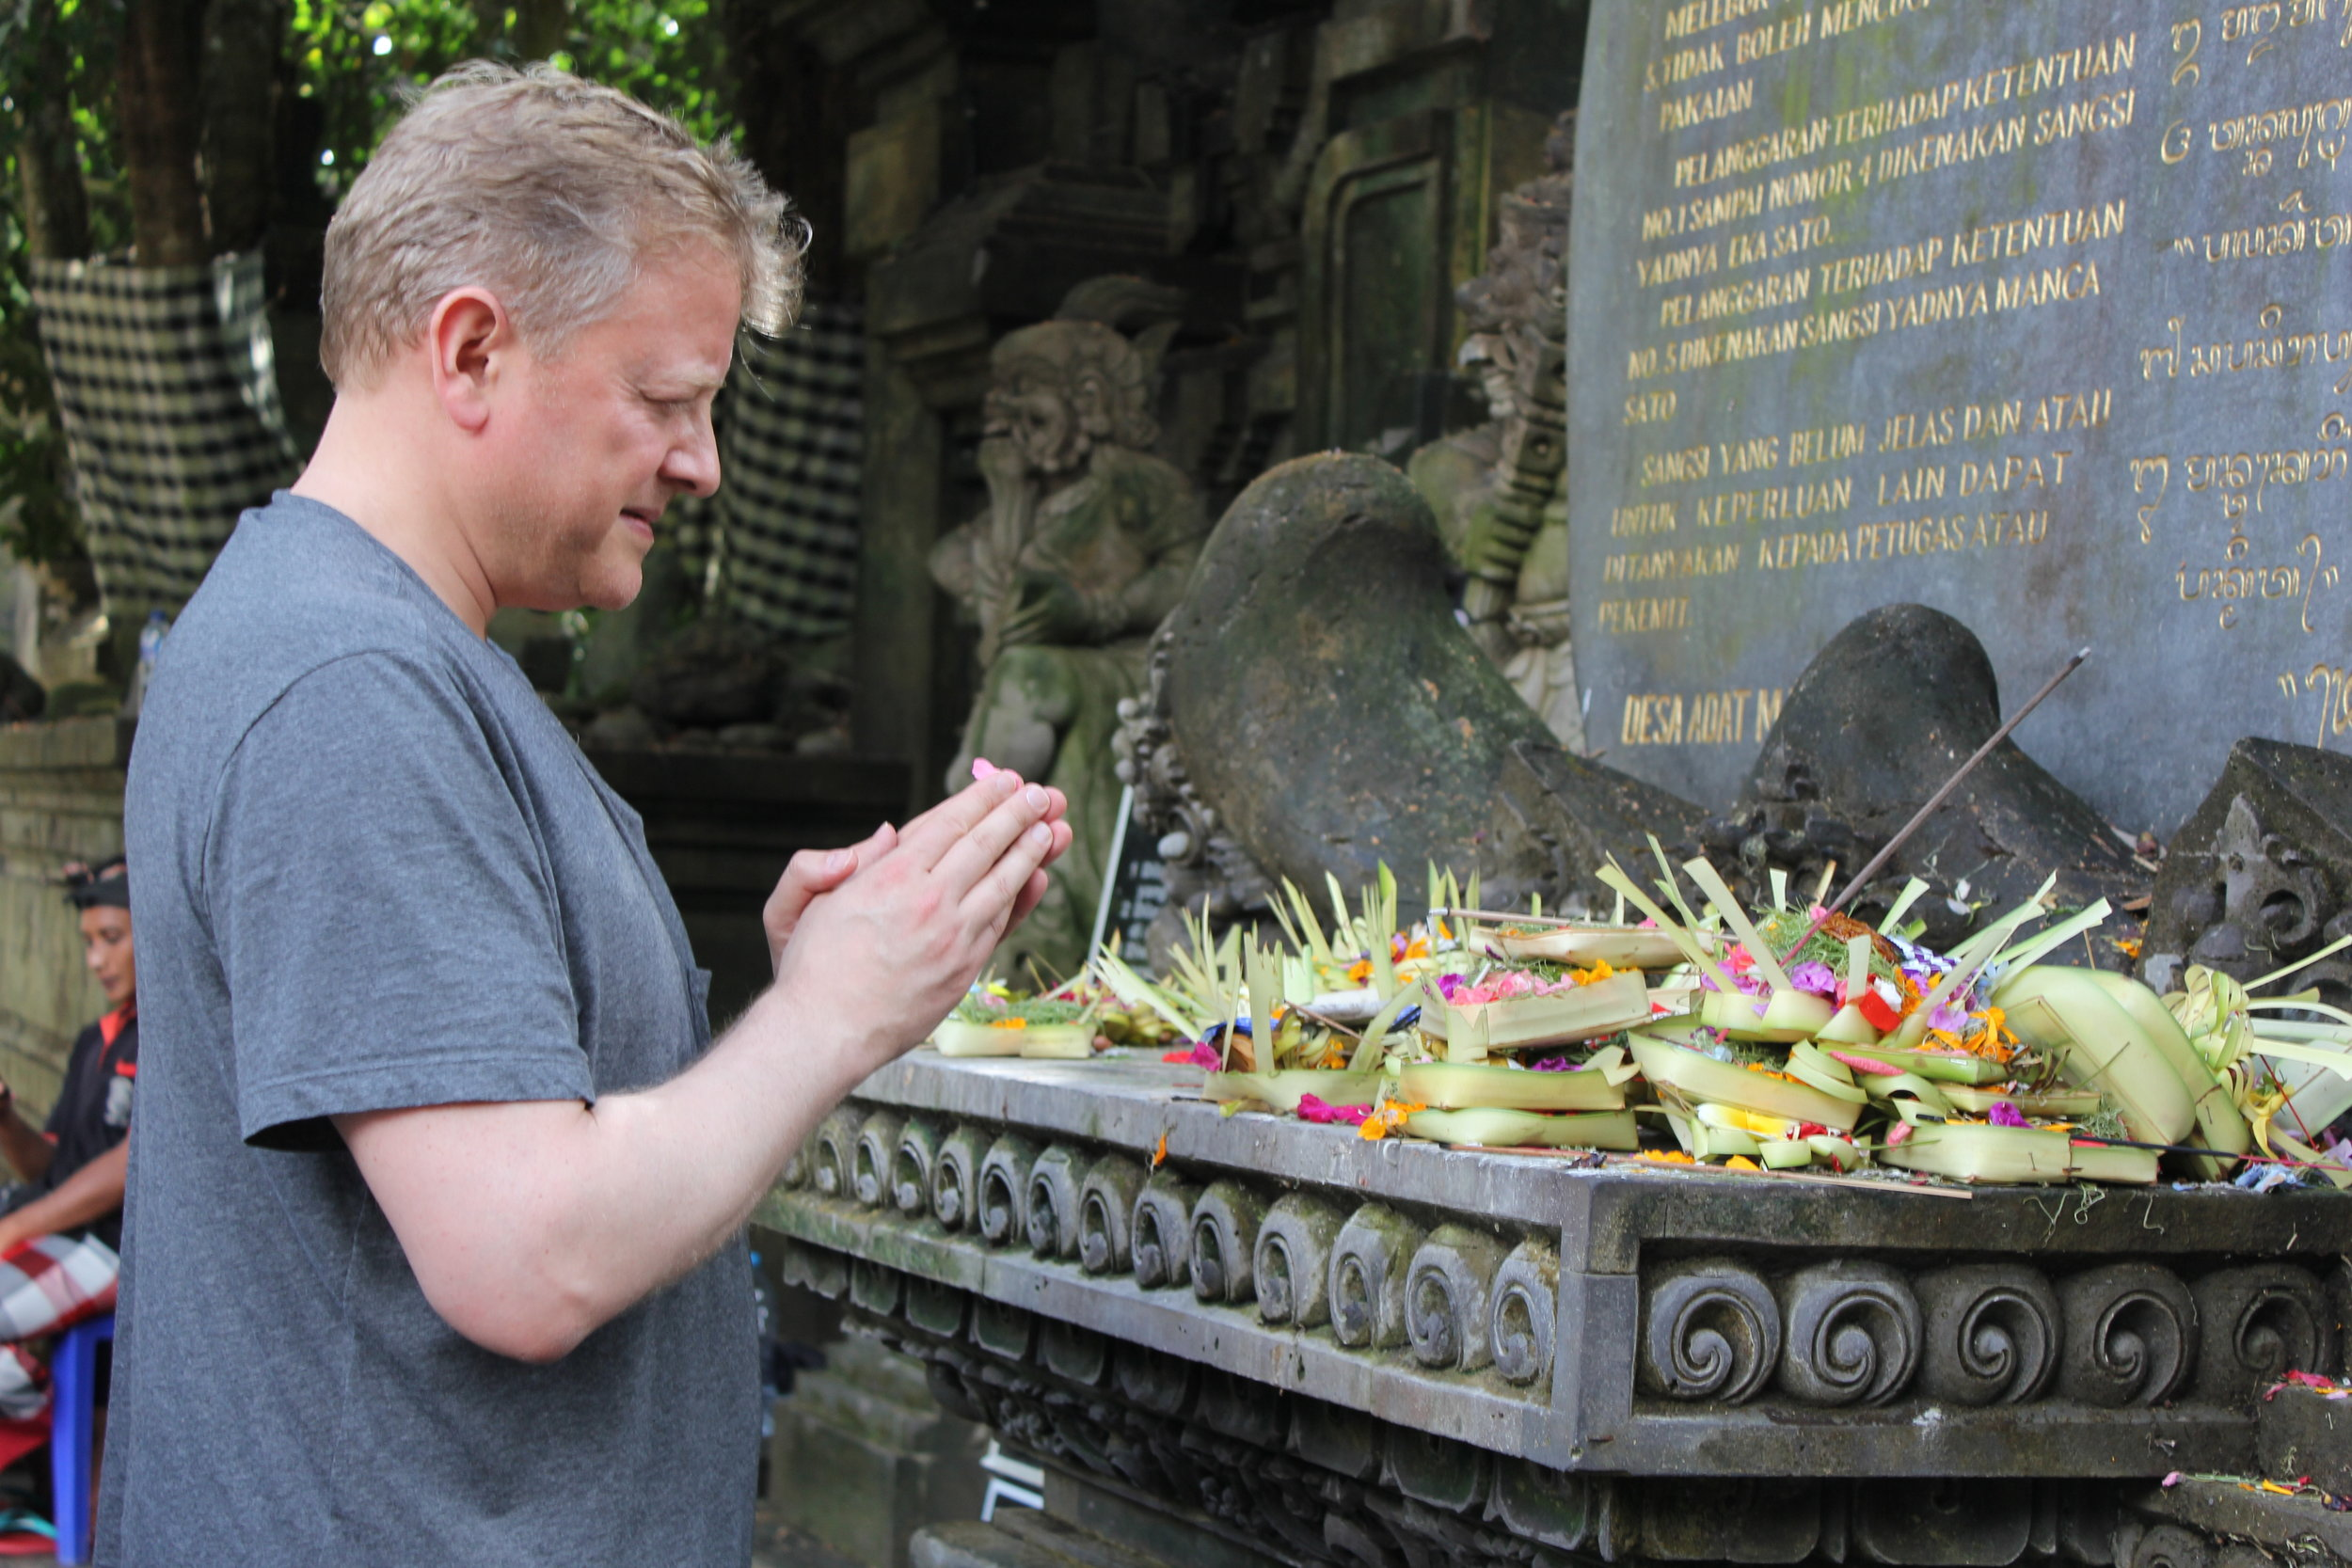 Saying a prayer for family at Tirta Empul, and yes I bathed there too.